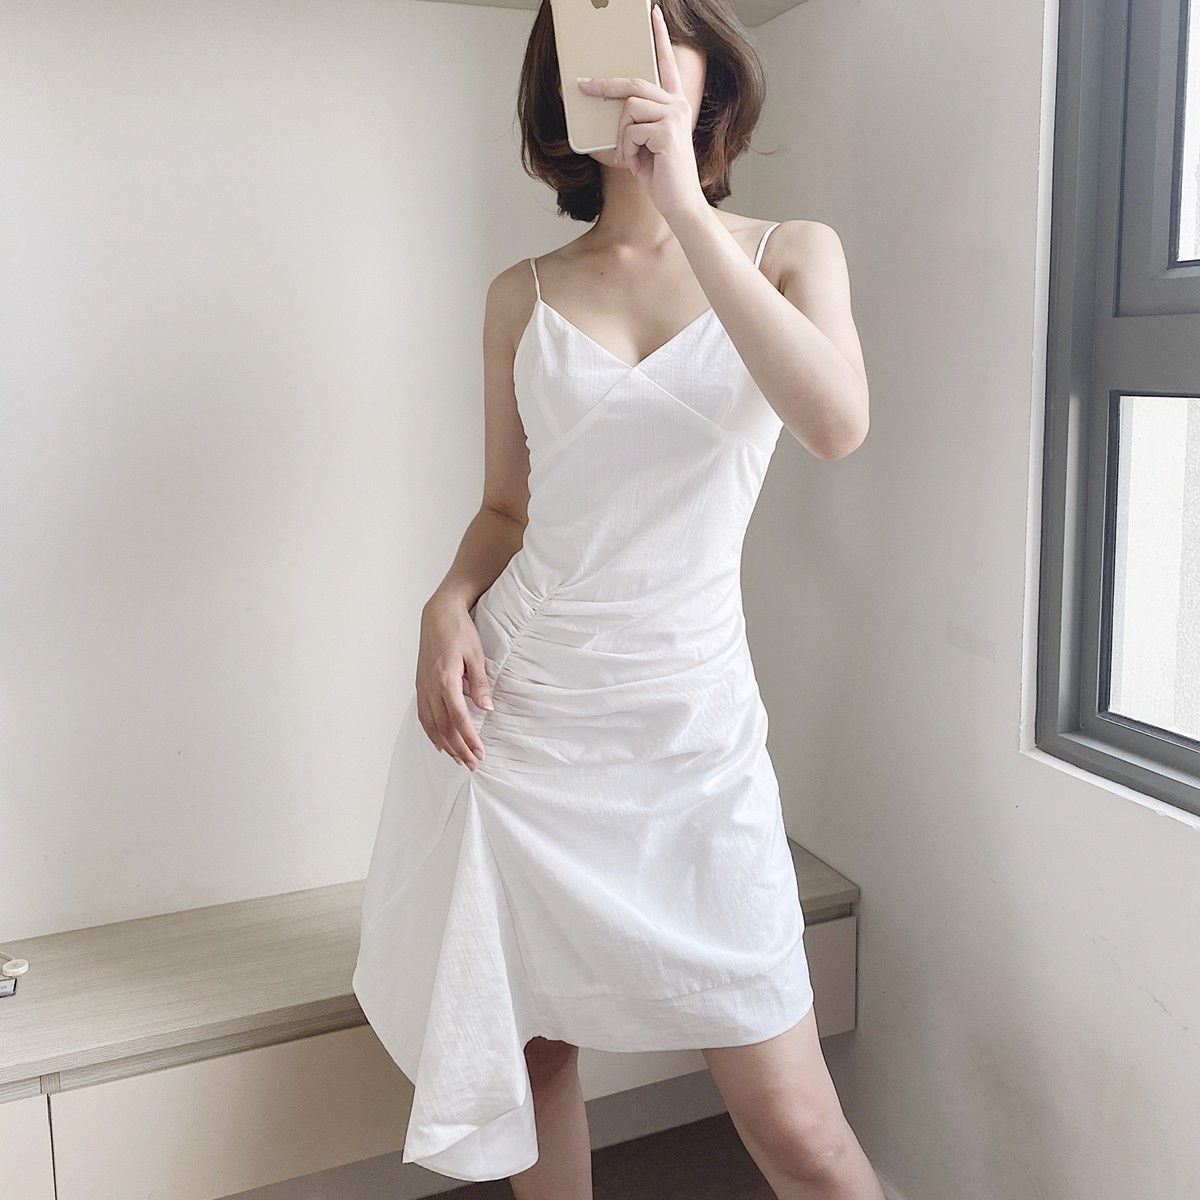 Soonnet dress